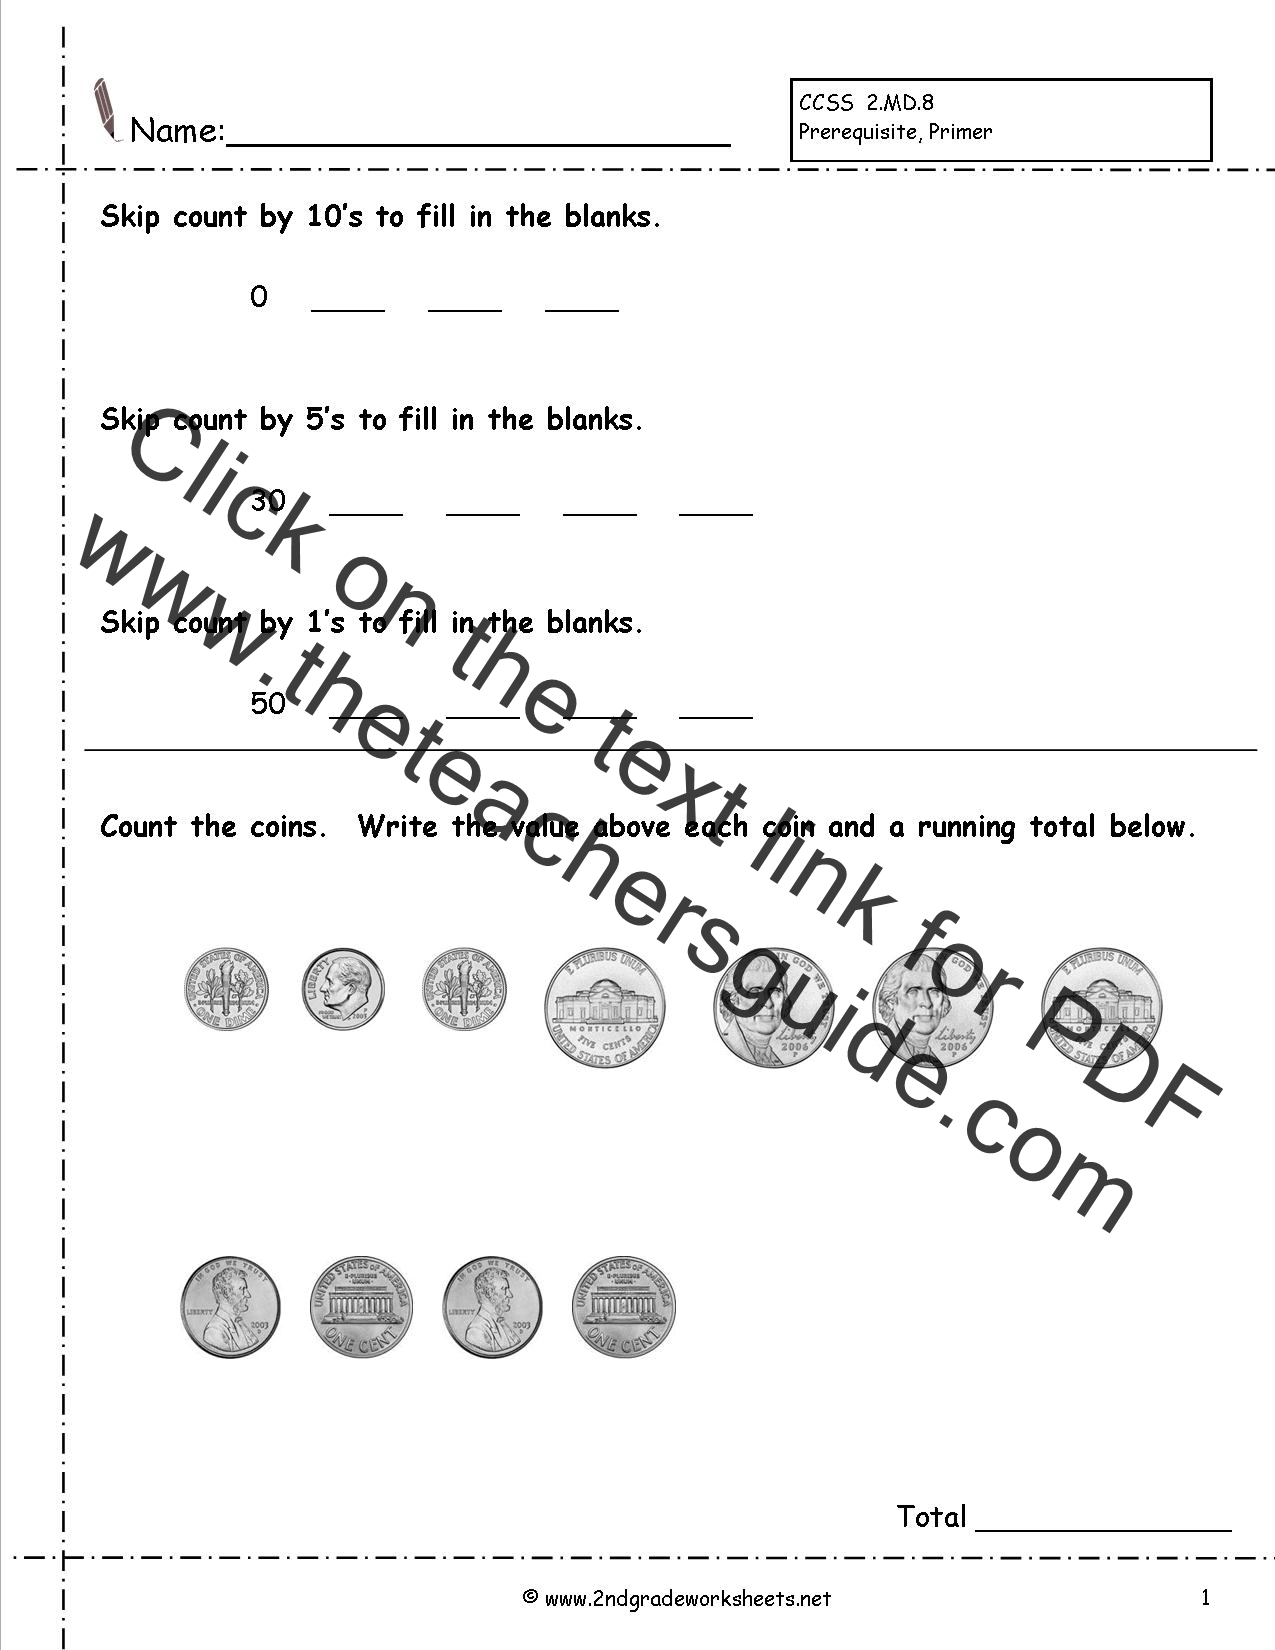 Printables Value Of Coins Worksheet Beyoncenetworth Worksheets Printables